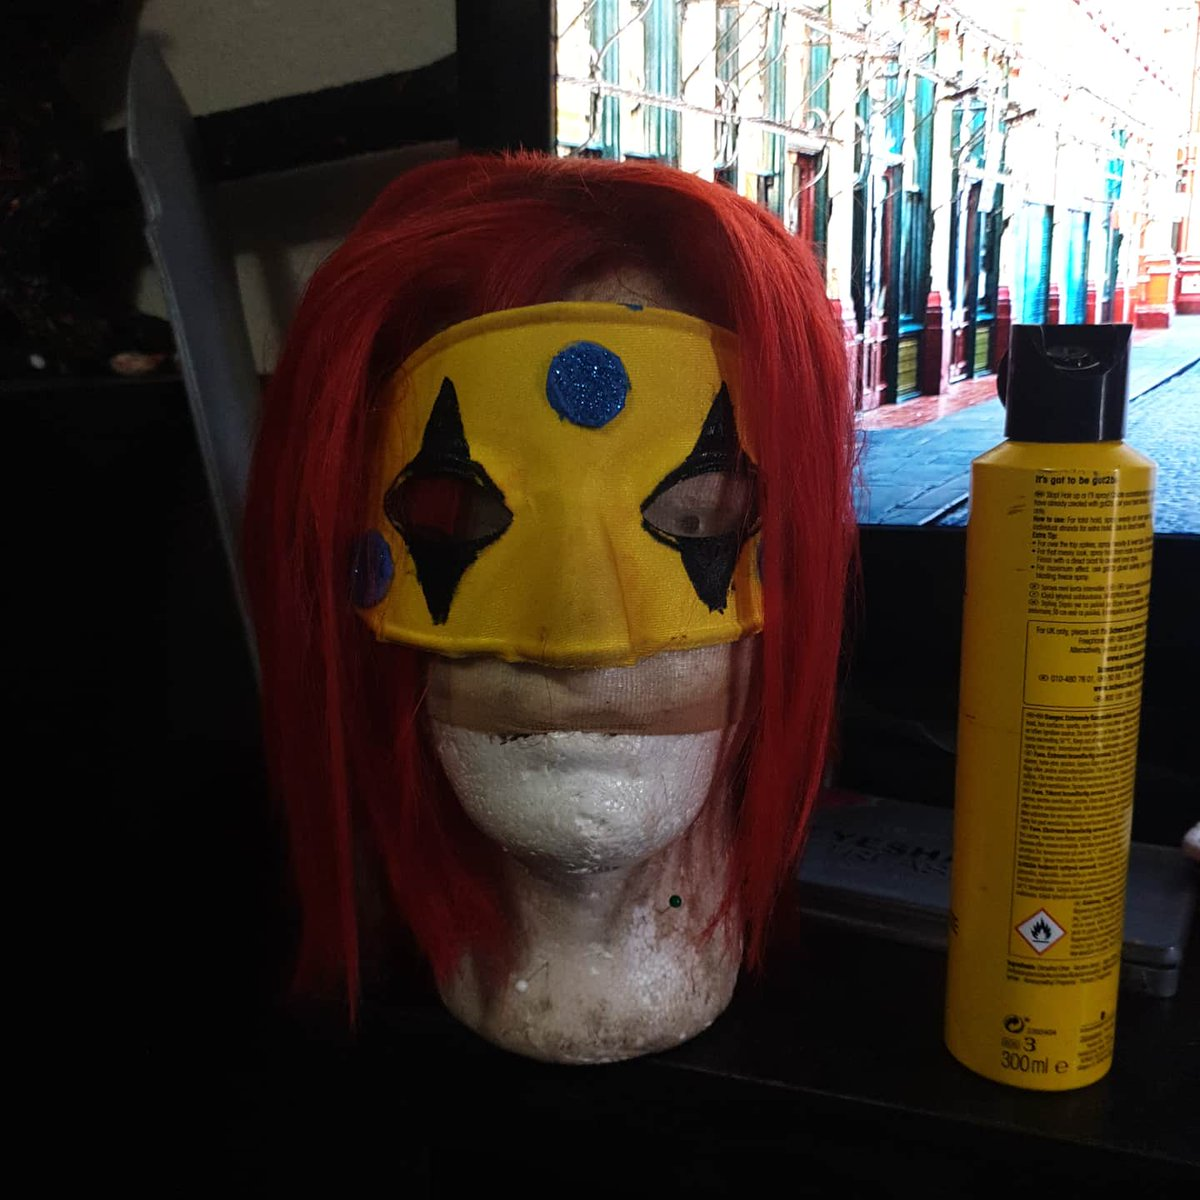 Styled a #partypoison wig for myself for march! Cant wait to do a #killjoy group cosplay on the sunday of #birminghammcm we have a party, fun ghoul and most likely is everything goes right a jet star I am so excited #mychemicalromance #mcrmy @MCRofficialpic.twitter.com/bZ2vyIffS5